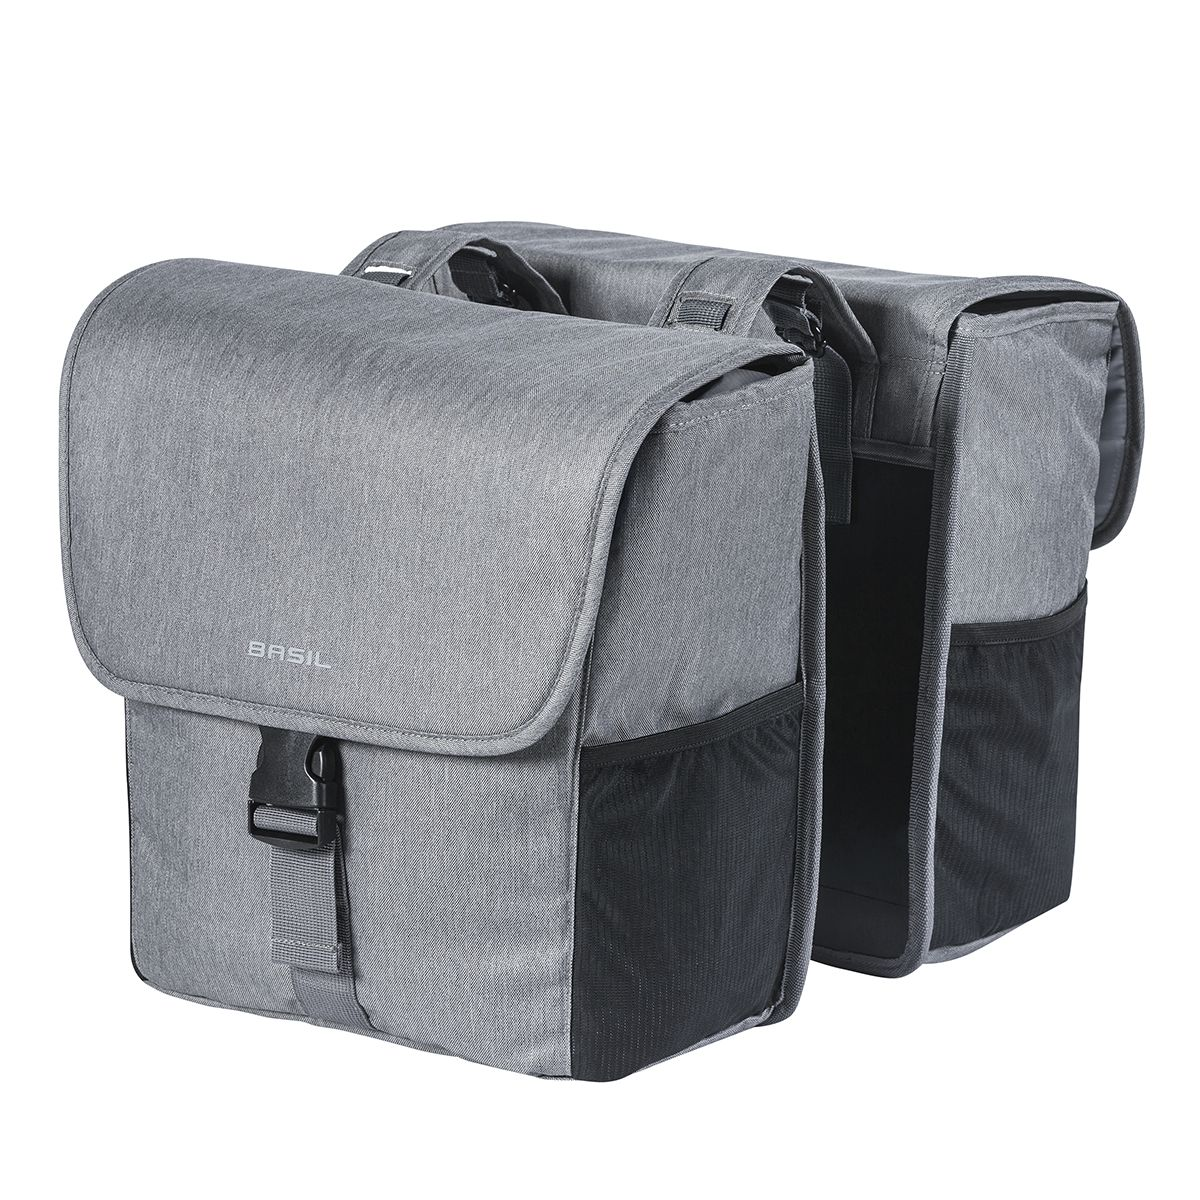 GO DOUBLE BAG panniers